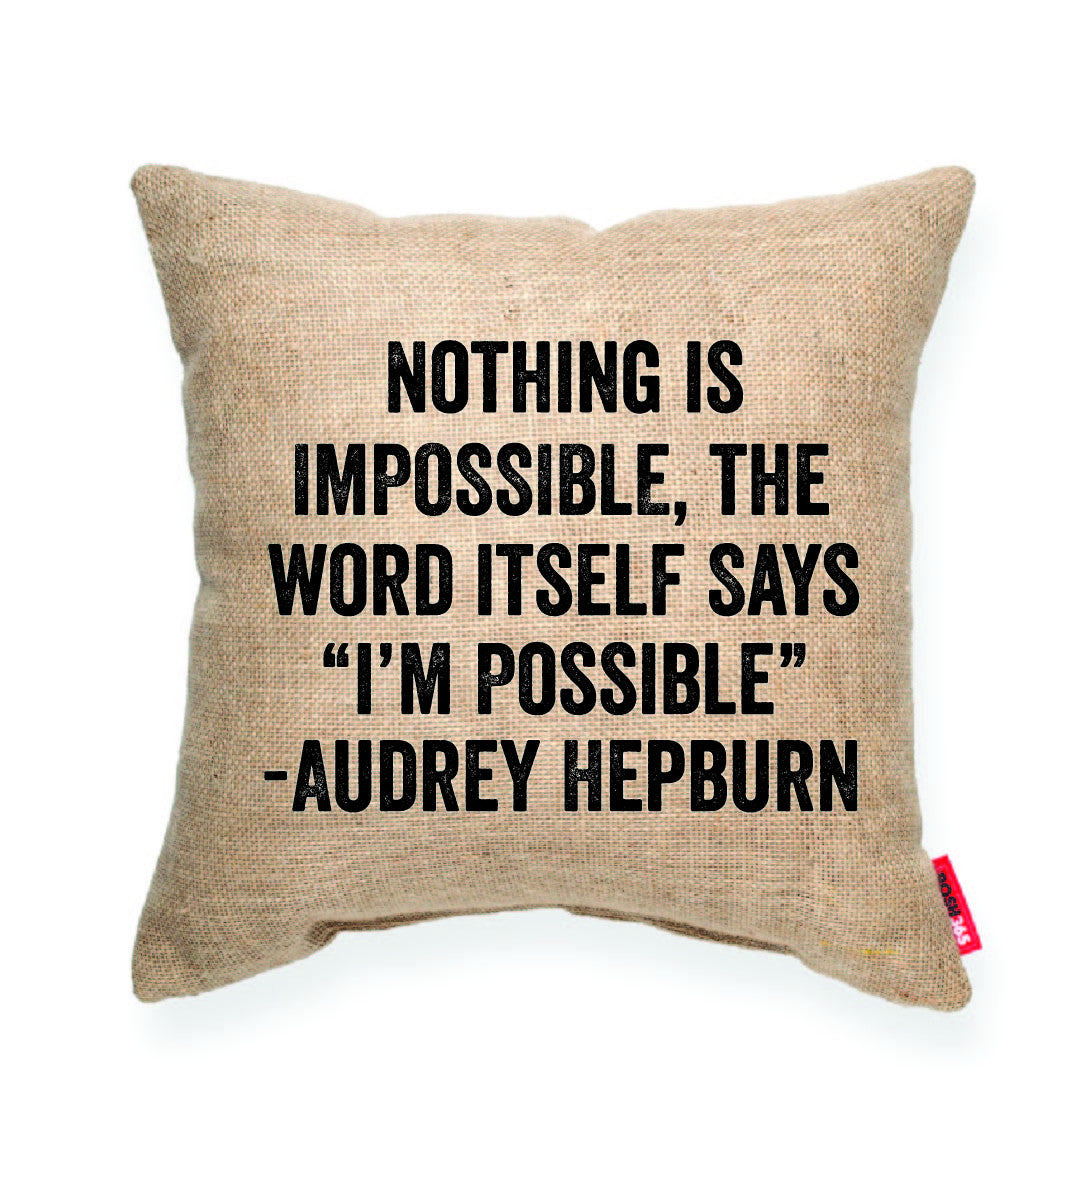 "Audrey Hepburn ""I'm Possible"" Decorative Throw Pillow"